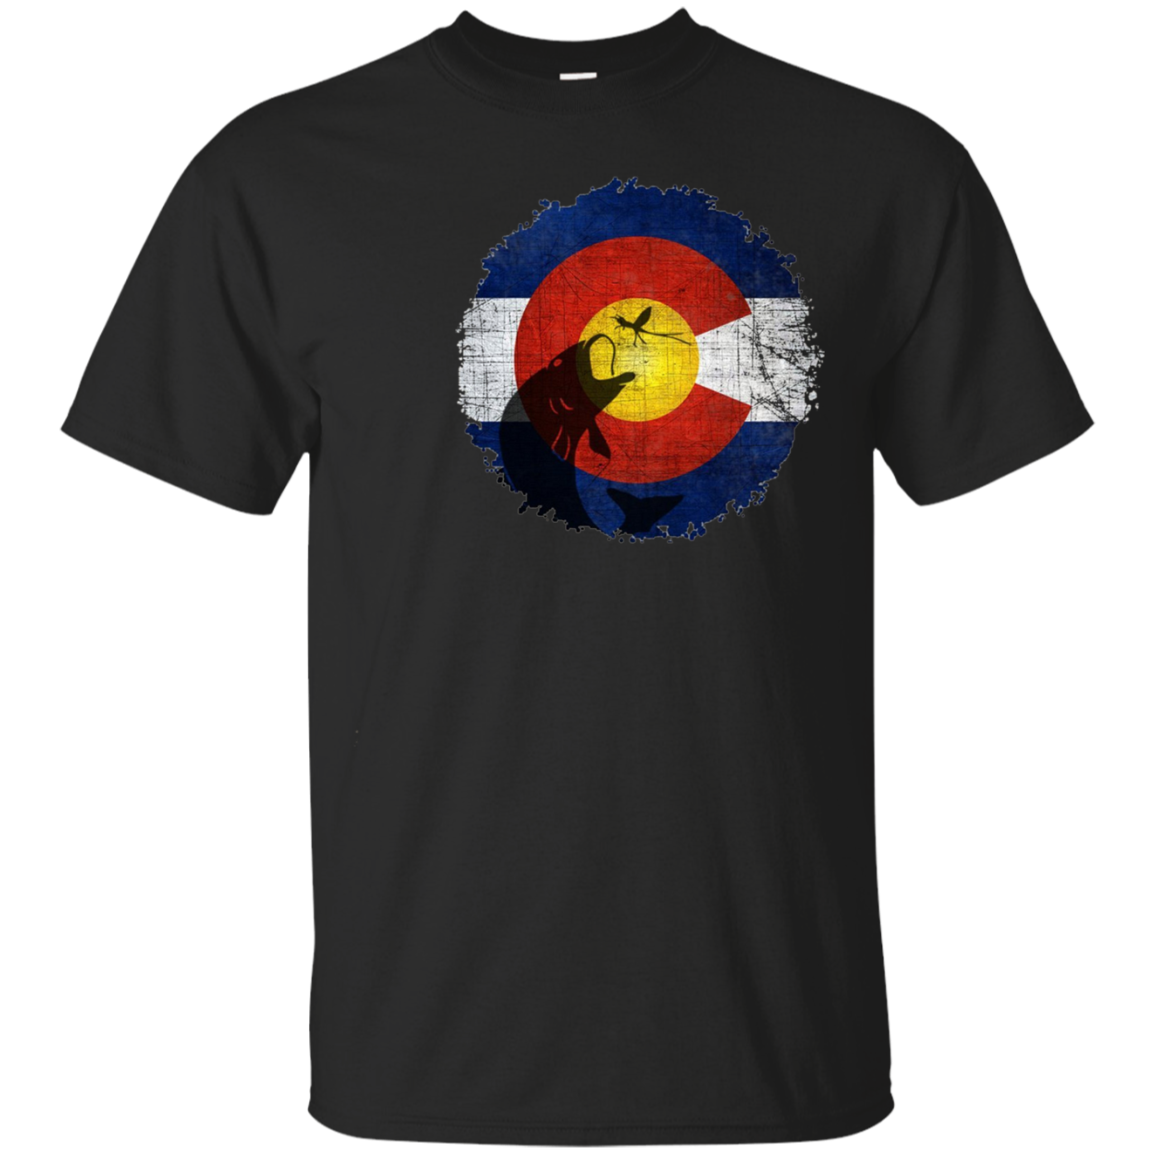 Colorado Flag T-Shirt with Fly Fishing Design